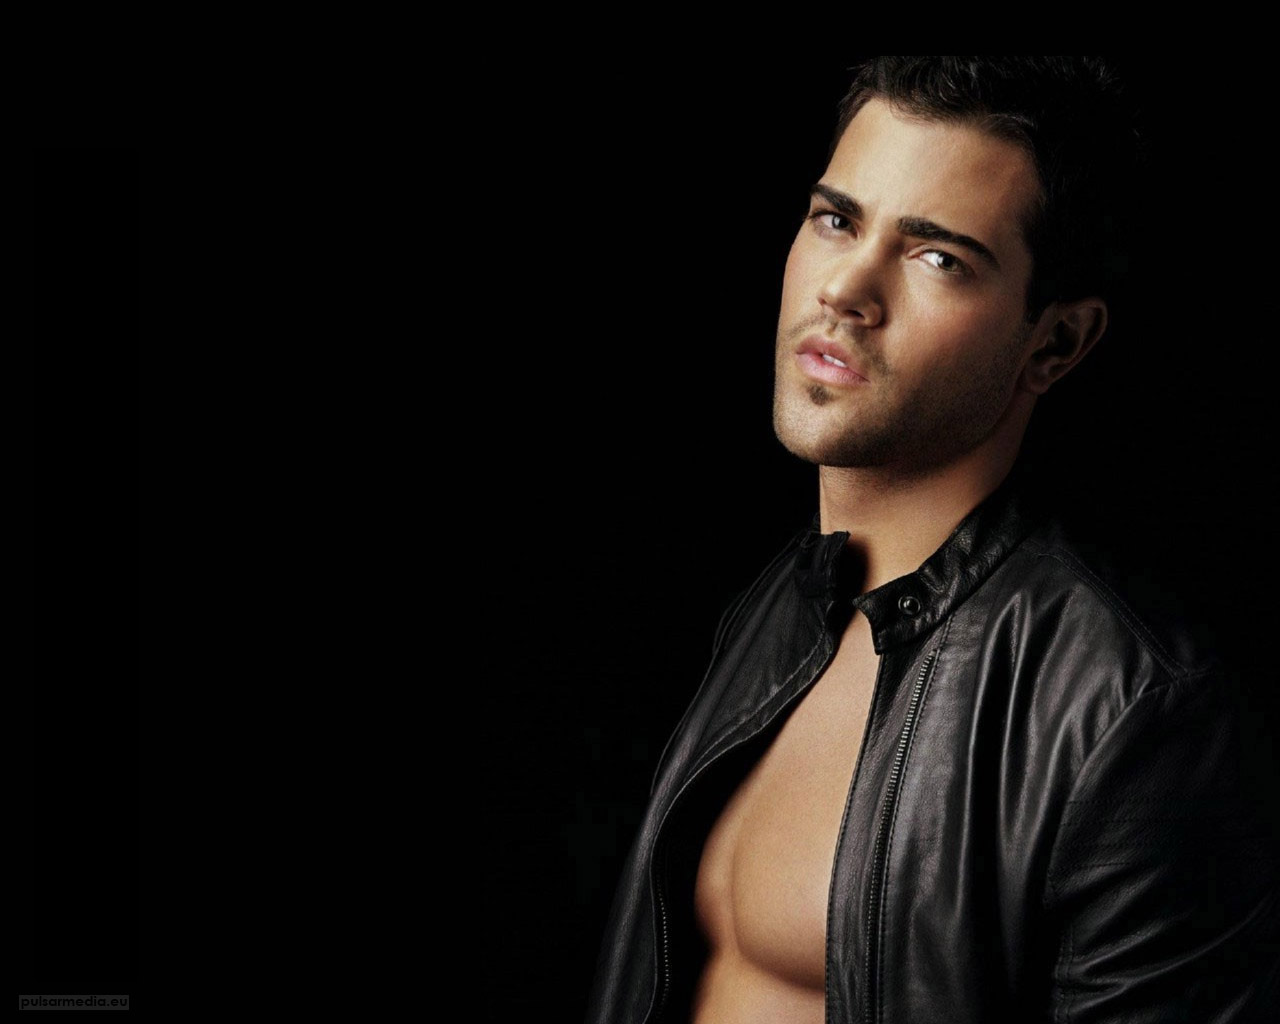 50 Hot and Sexy Men Wallpapers for PC | Smashing Yolo